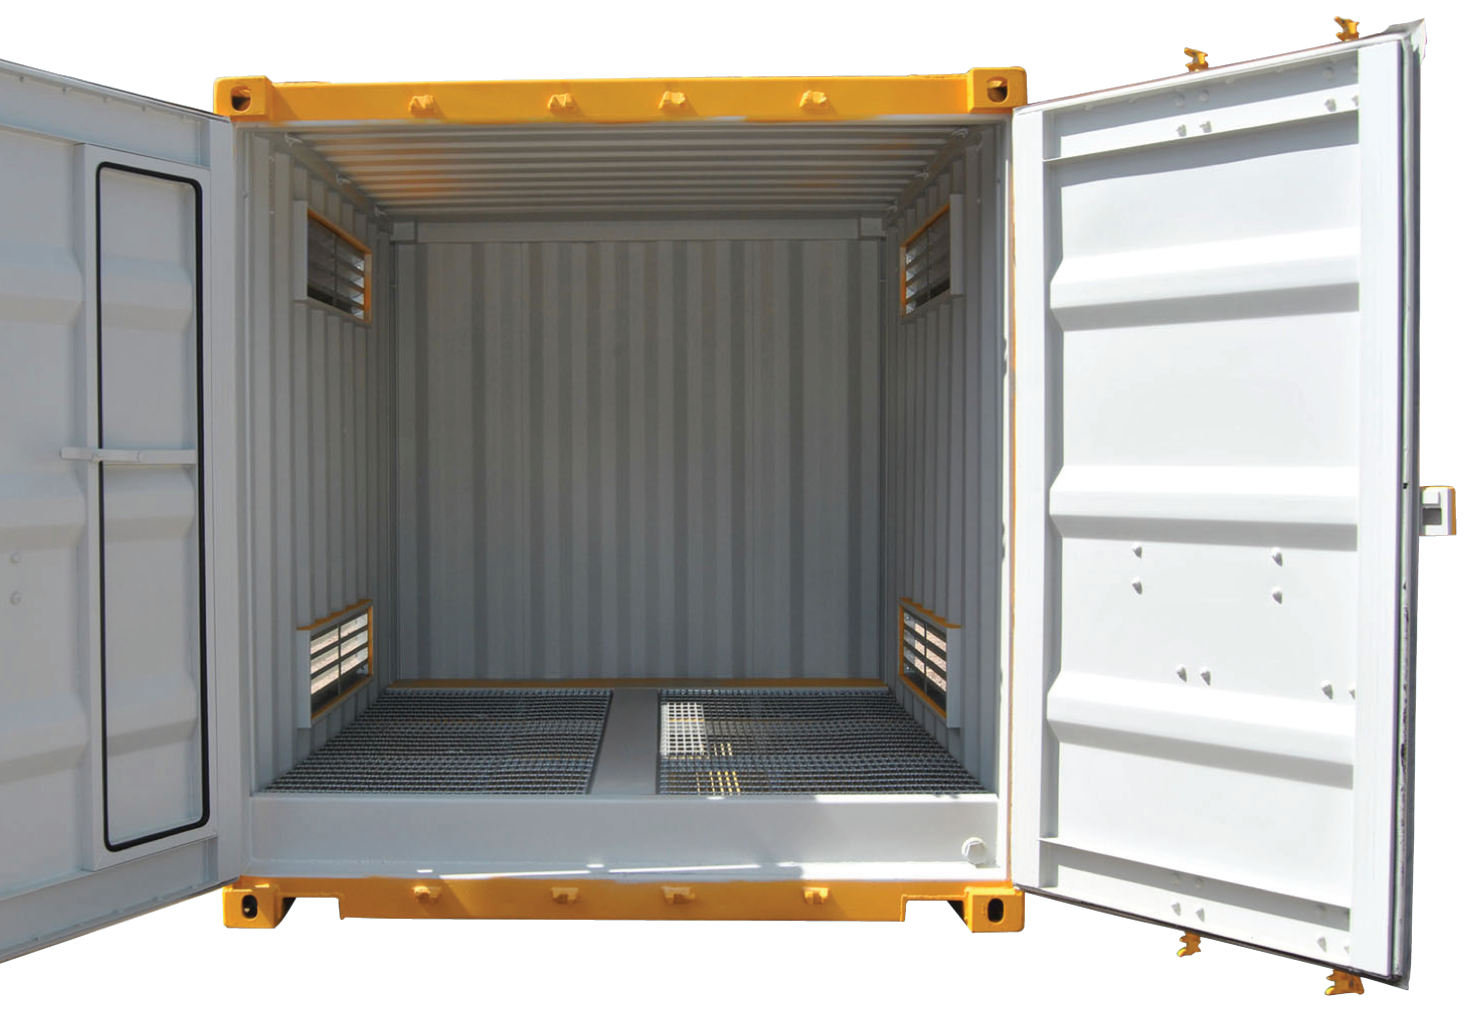 Storage in Containers